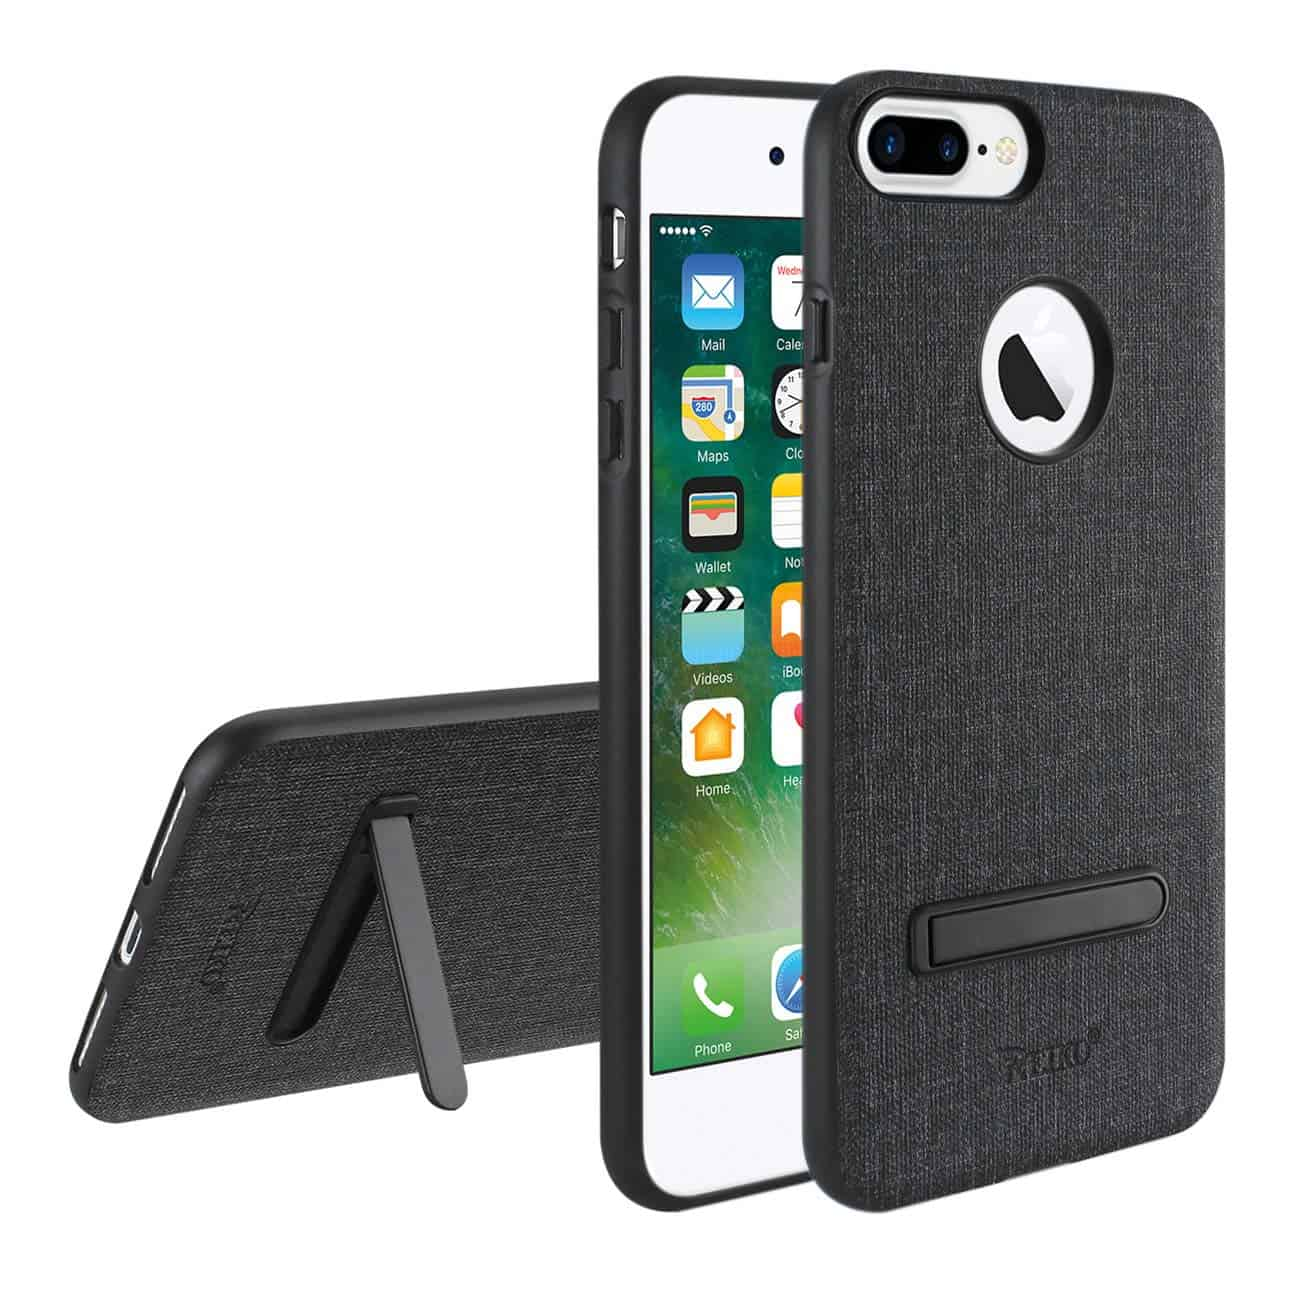 iPhone 8 Plus/ 7 Plus Rugged Texture TPU Protective Cover In Black